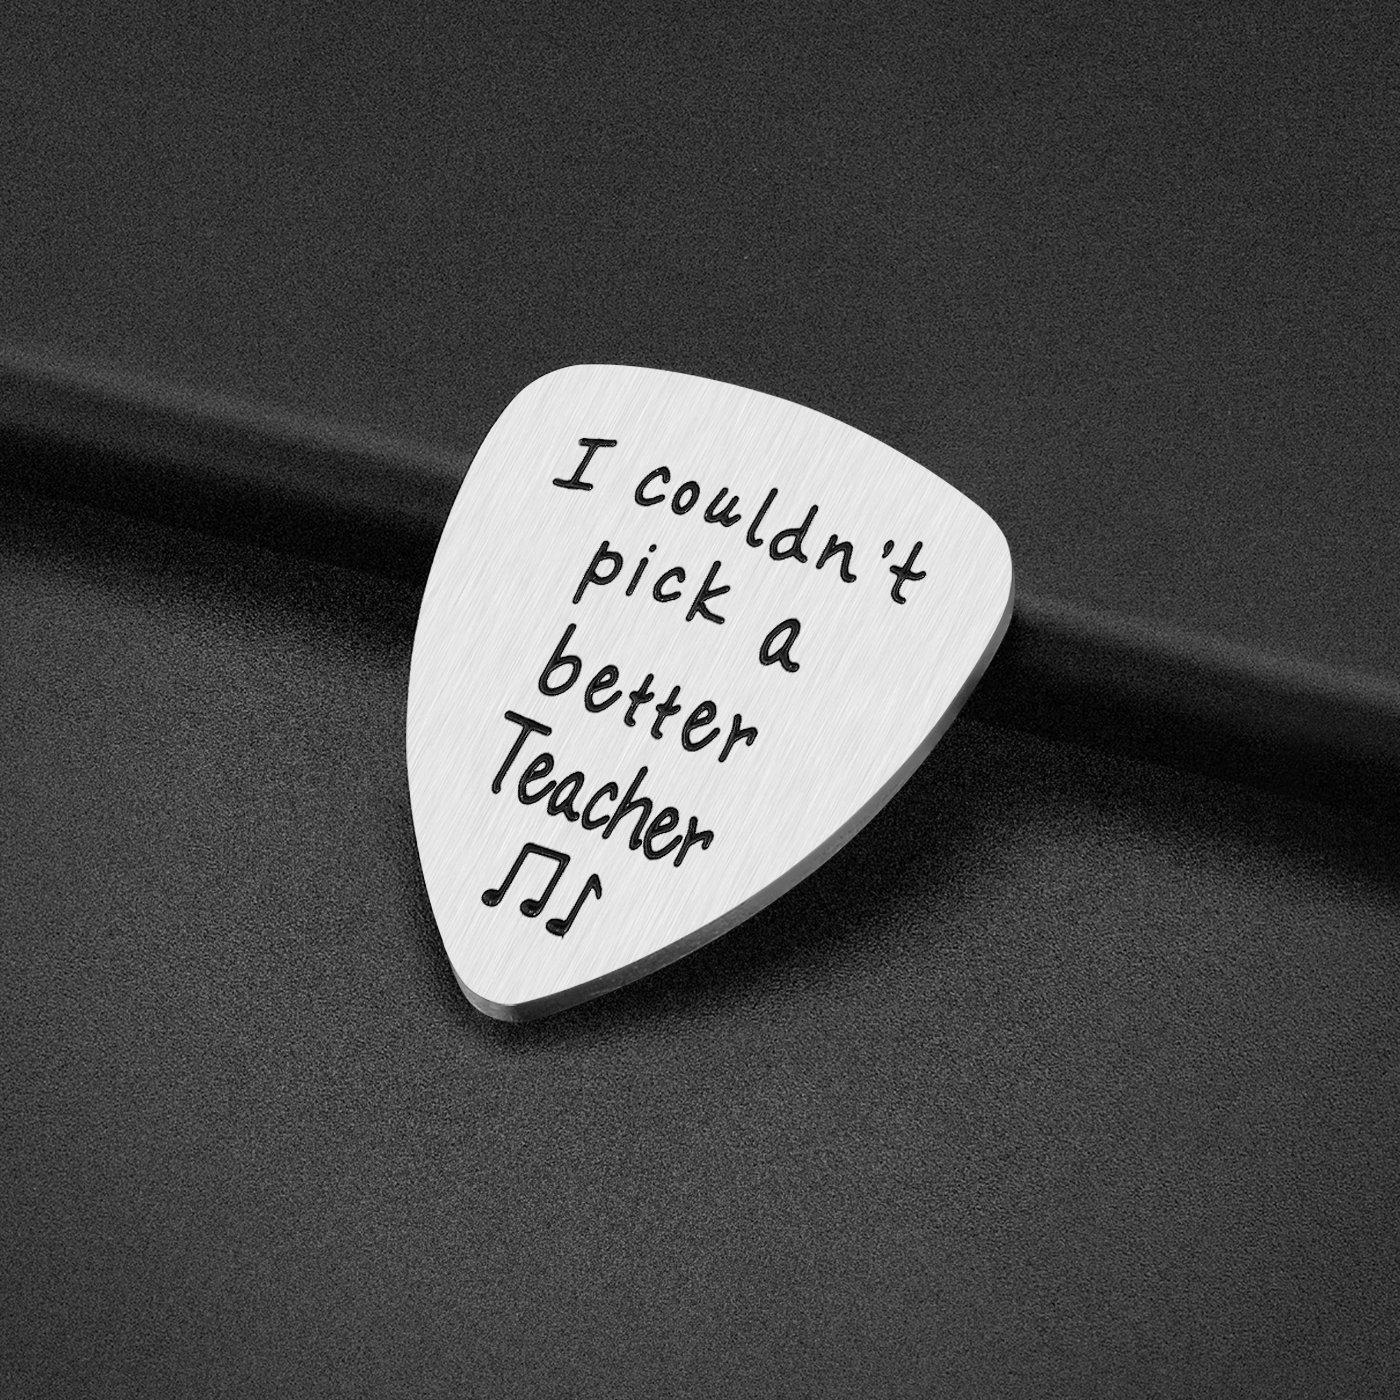 best friend gifts guitar pick i couldnt pick a better friend guitar pick perfect friendship gift - Best Friend Gifts For Christmas